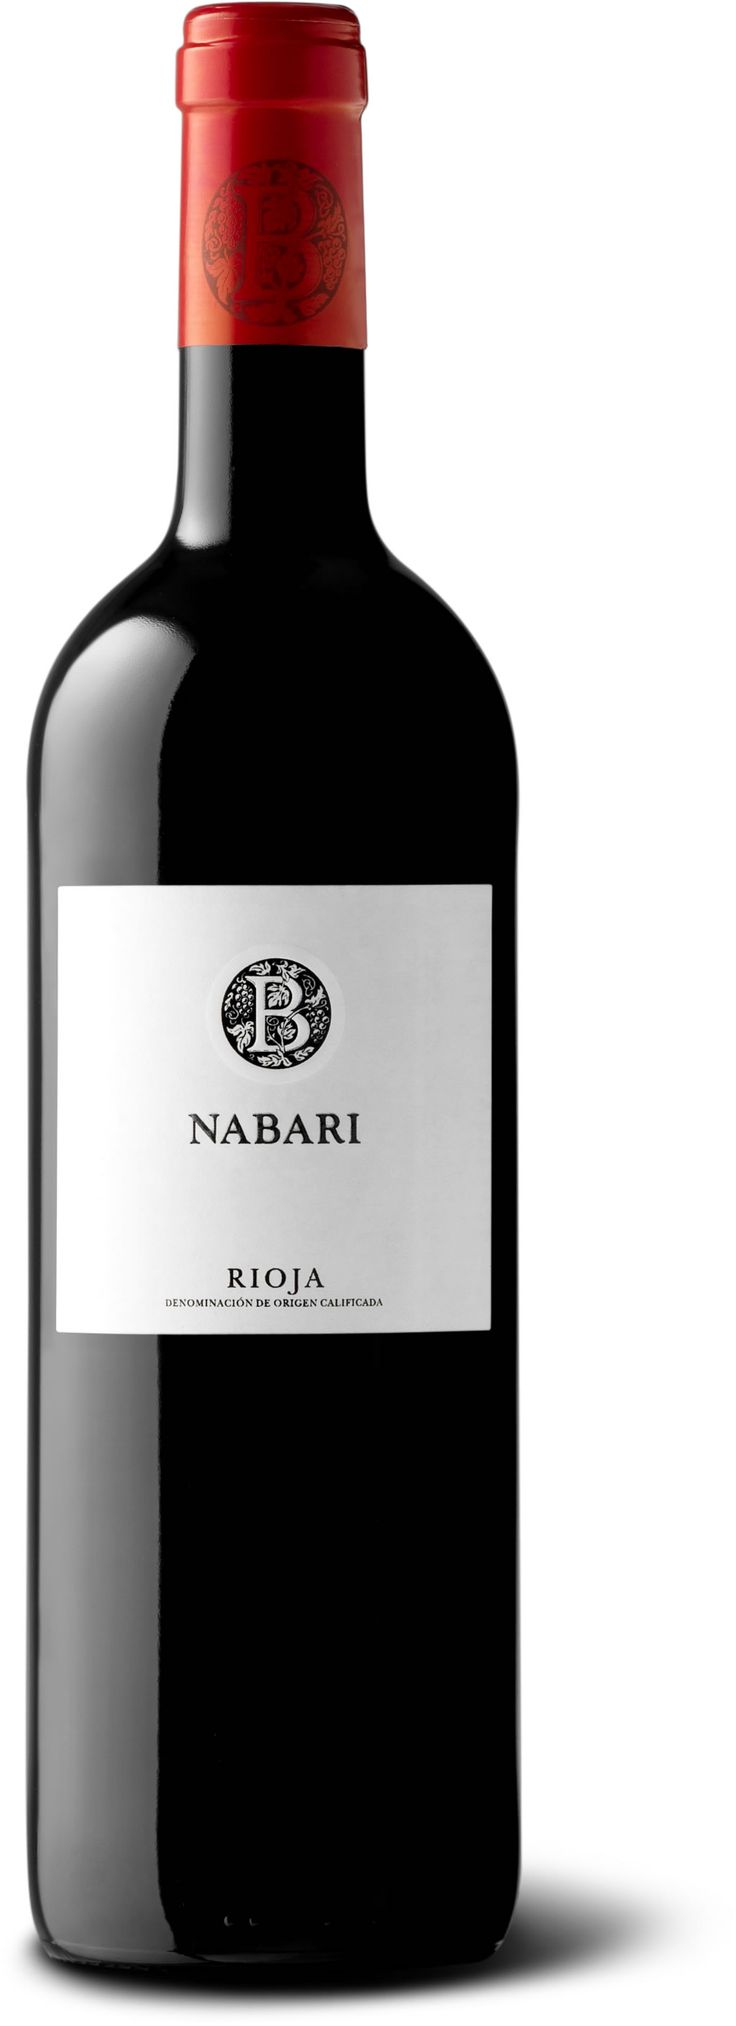 Bodegas Basagoiti Rioja Nabari 2012—fresh, juicy and violet-red, this unoaked blend of 75% Tempranillo and 25% Garnacha evokes vibrant cherries and sweet blueberry aromas along with subtle licorice and woodsy notes; beautifully versatile and highly recommended at PLN 33,50 from El Catador